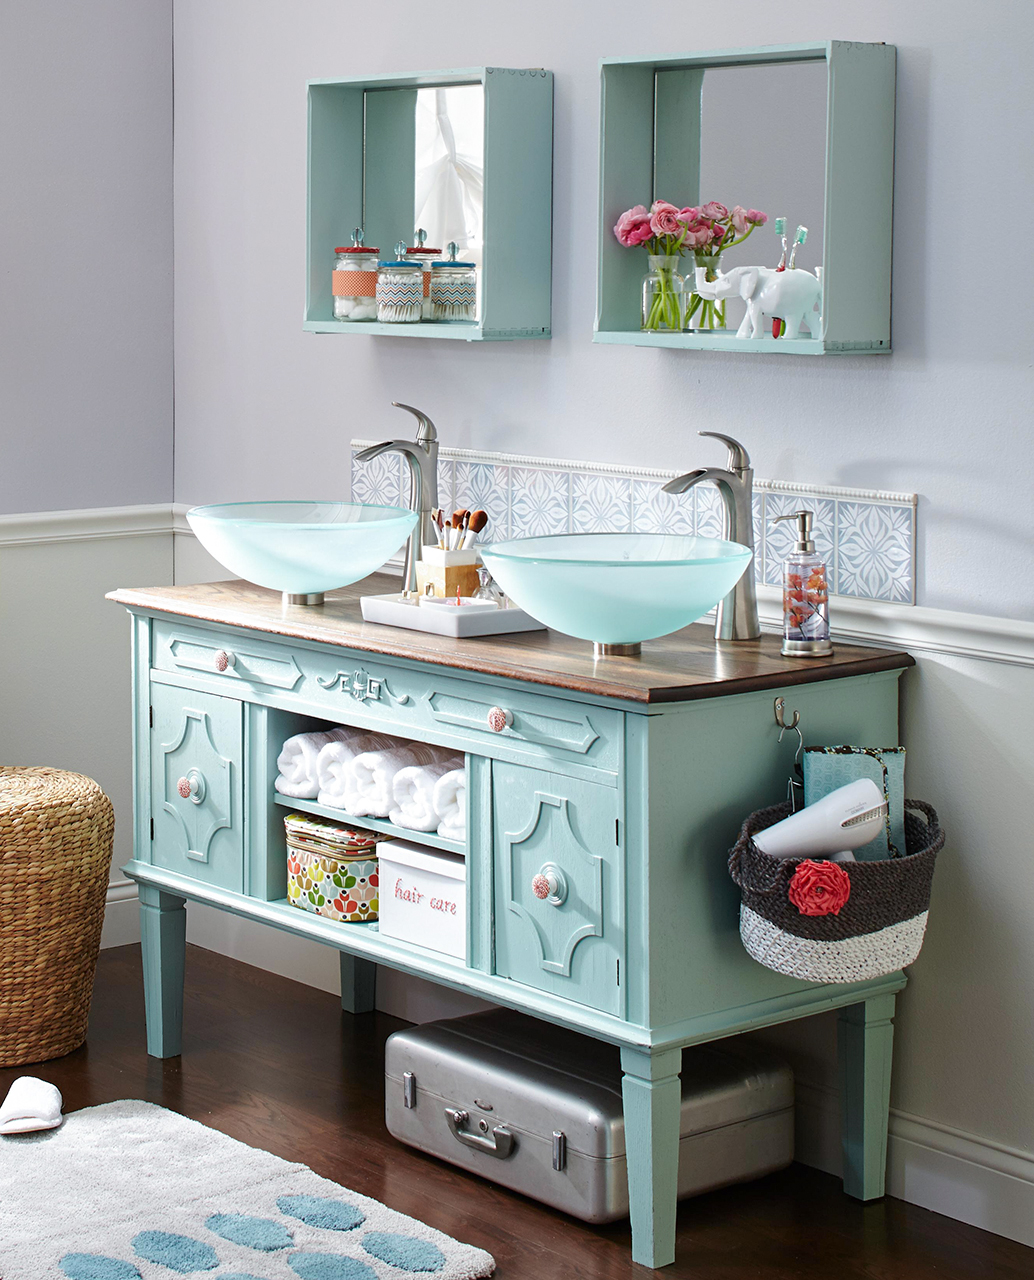 Country style bathroom with repurposed furniture as a vanity